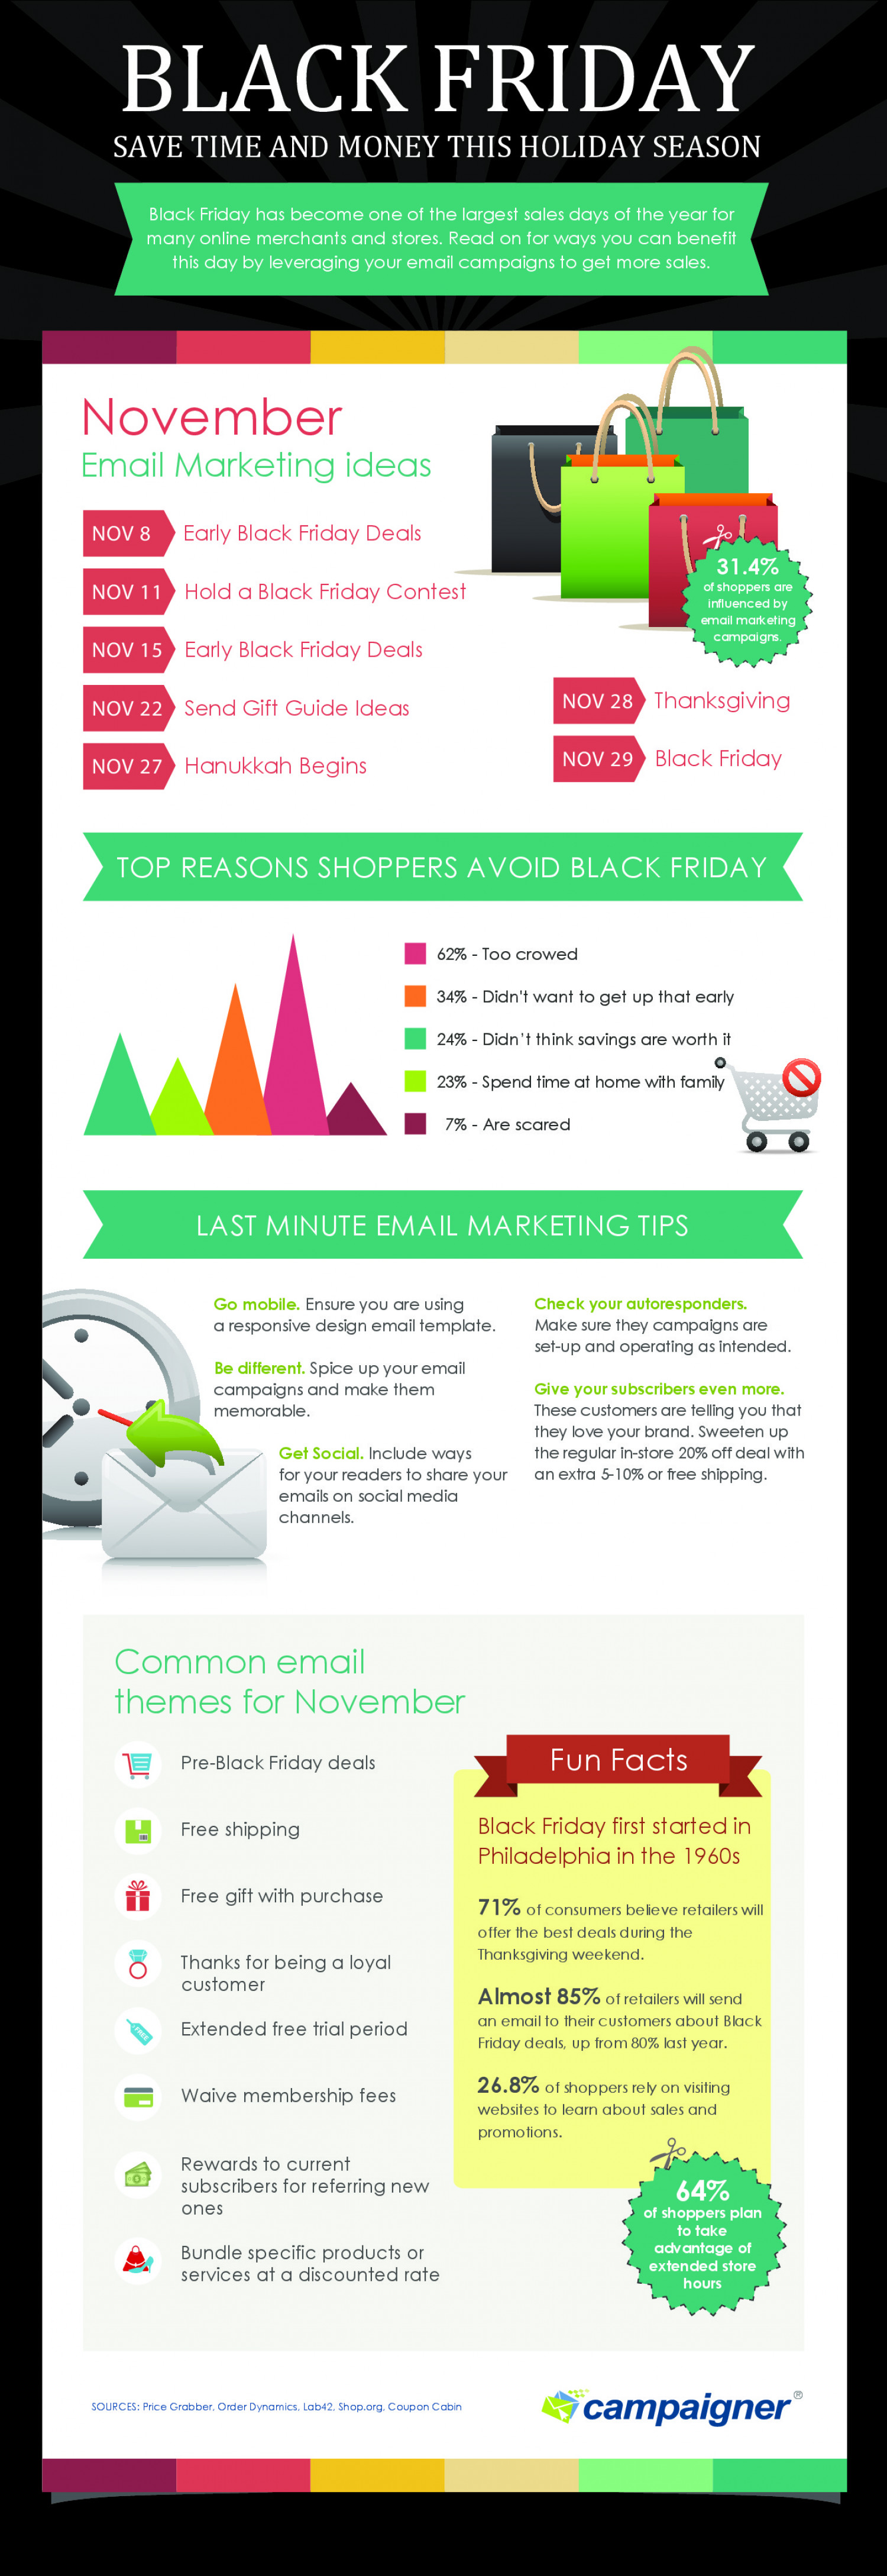 November Email Marketing Campaign Planning Tips Infographic